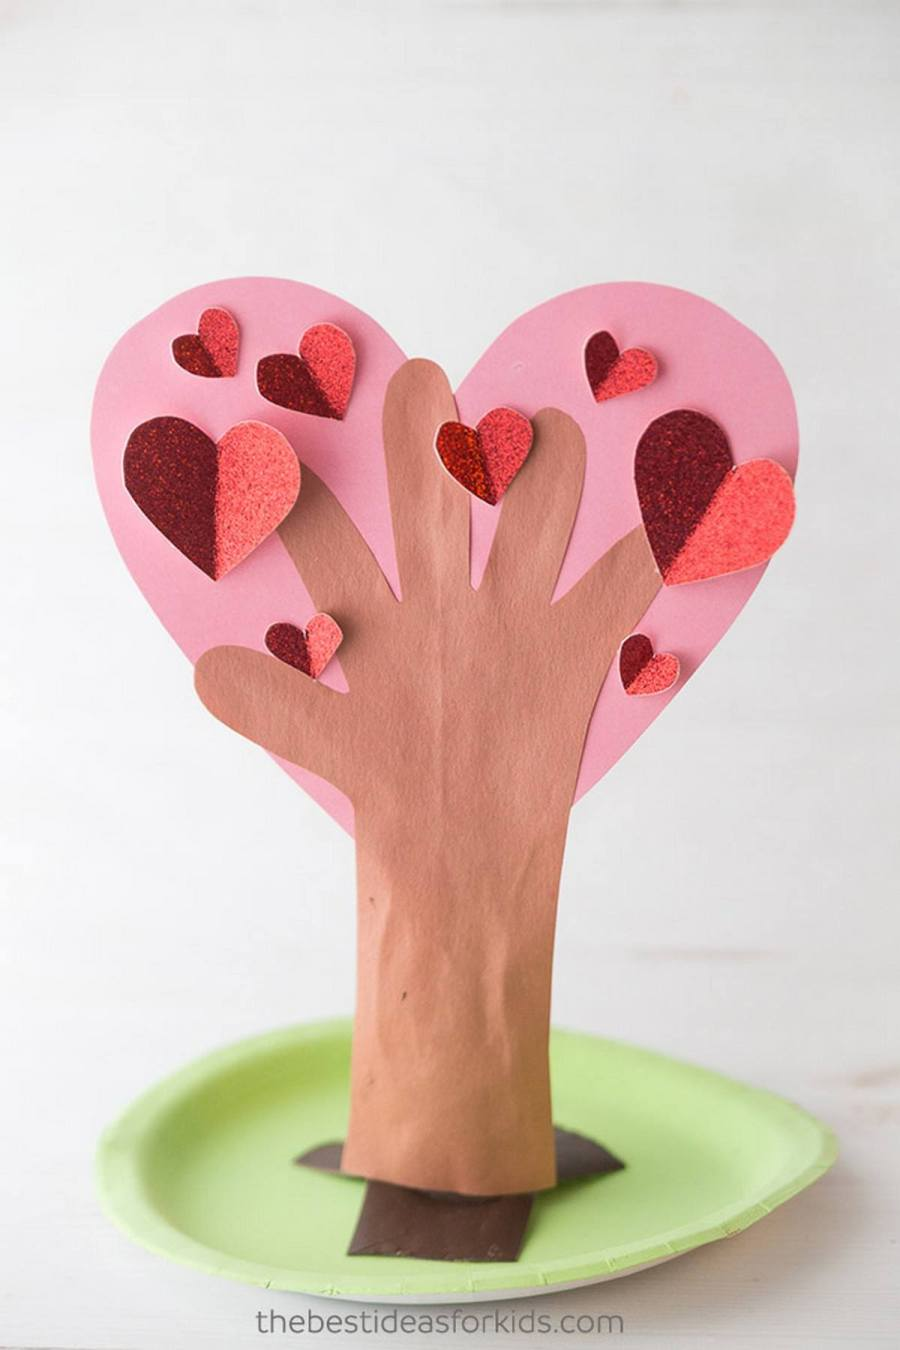 There's nothing sweeter than making handprint art & crafts to preserve your children's little hands forever! Handprint crafts are a wonderful way to memorialize our kids when they are young.